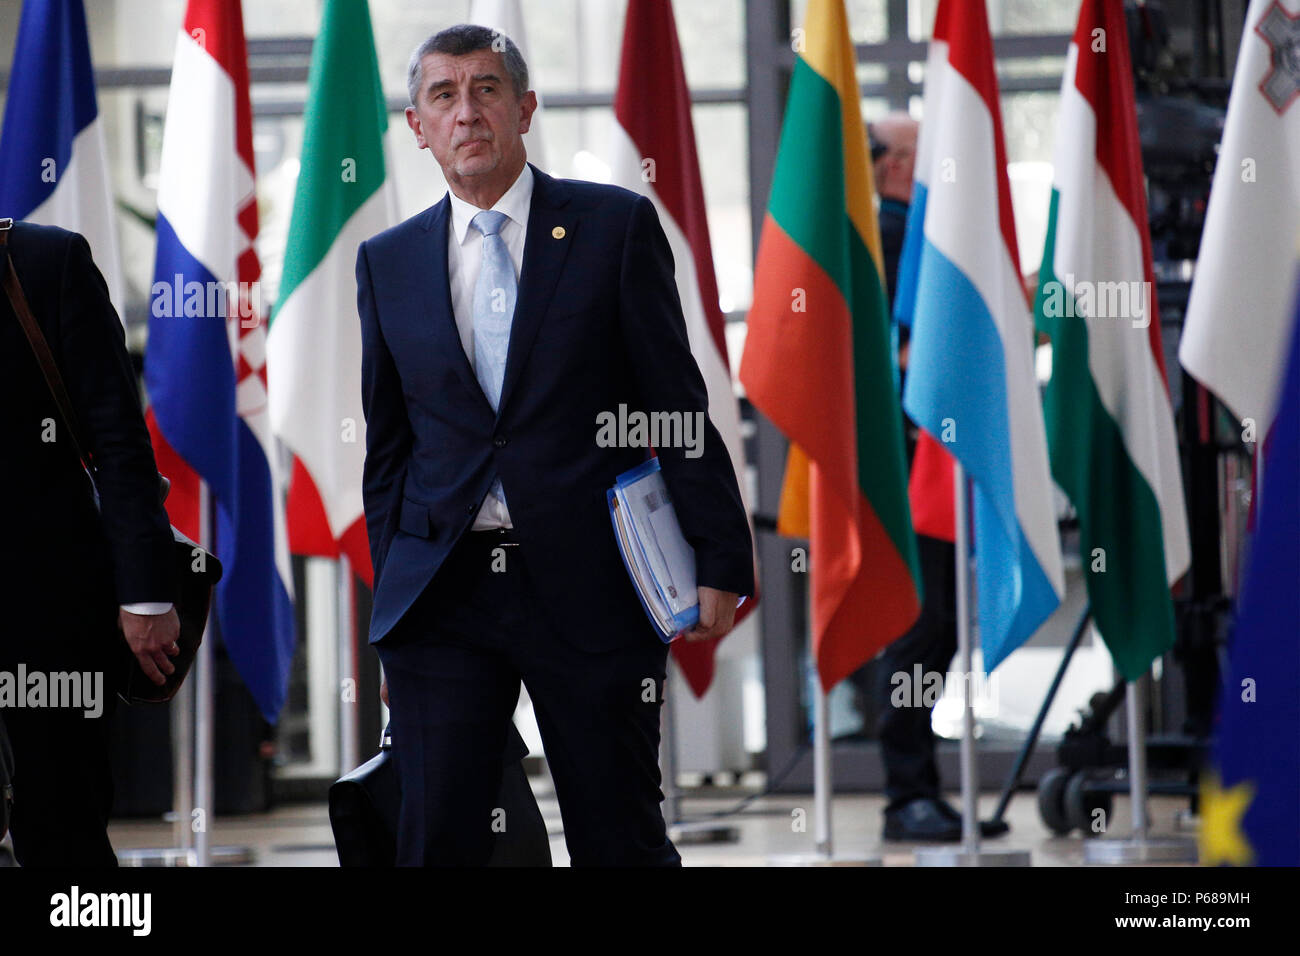 Brussels, Belgium on Jun. 28, 2018. Prime Minister of Czech, Andrej Babis arrives for a meeting with European Union leaders. - Stock Image